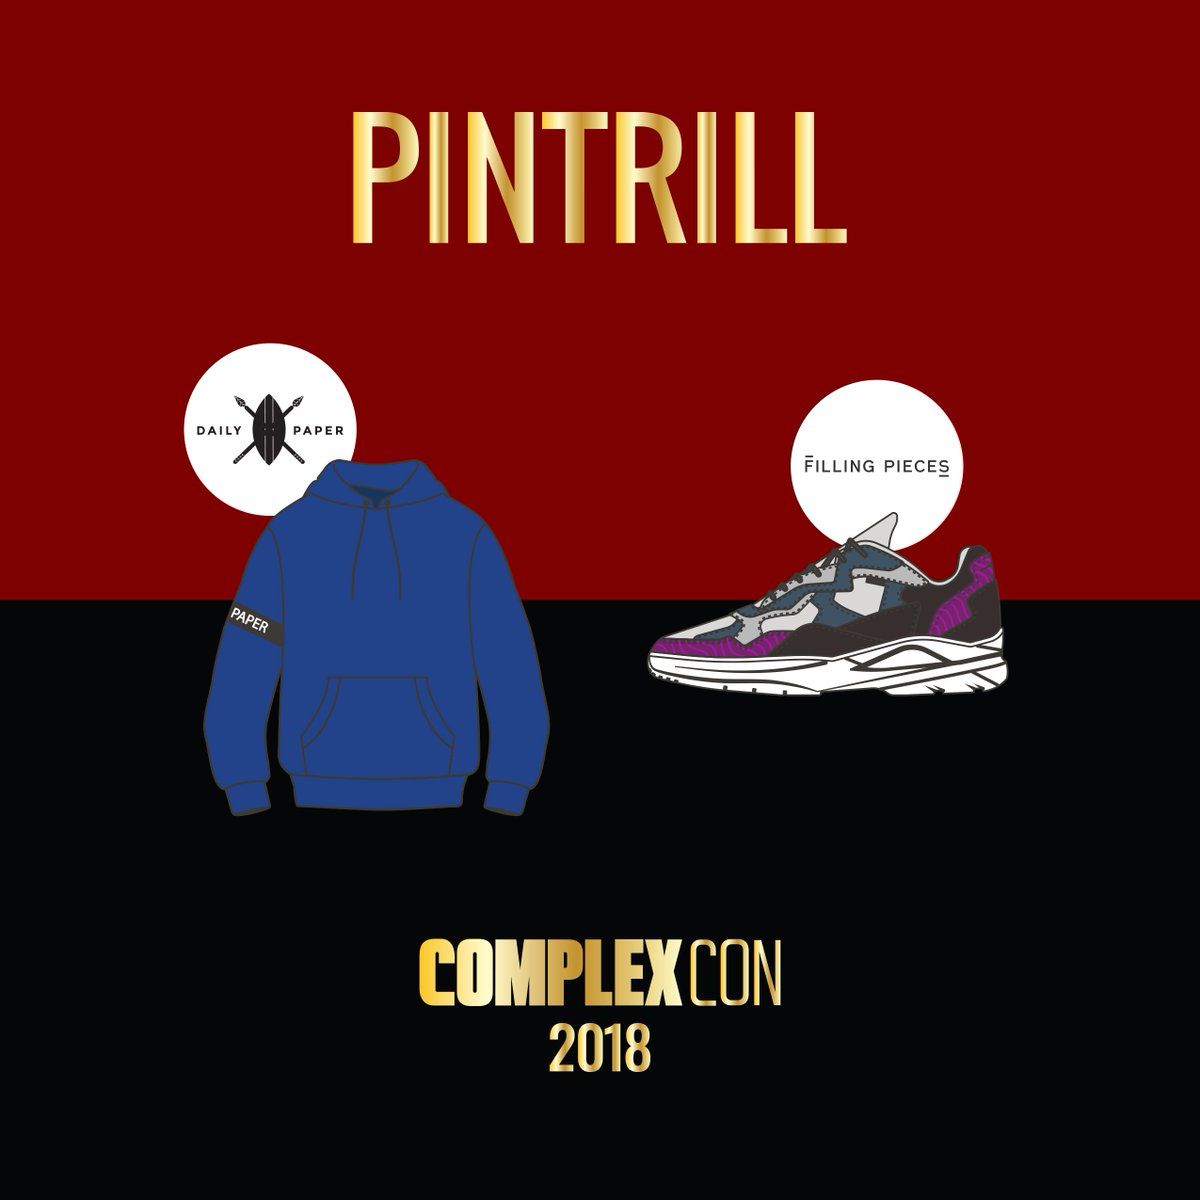 WE'RE ALMOST THERE!! Announcing #FillingPieces + @Dailypaper_ for #GoodTrillHunting ⚡️ See you this weekend, @ComplexCon!